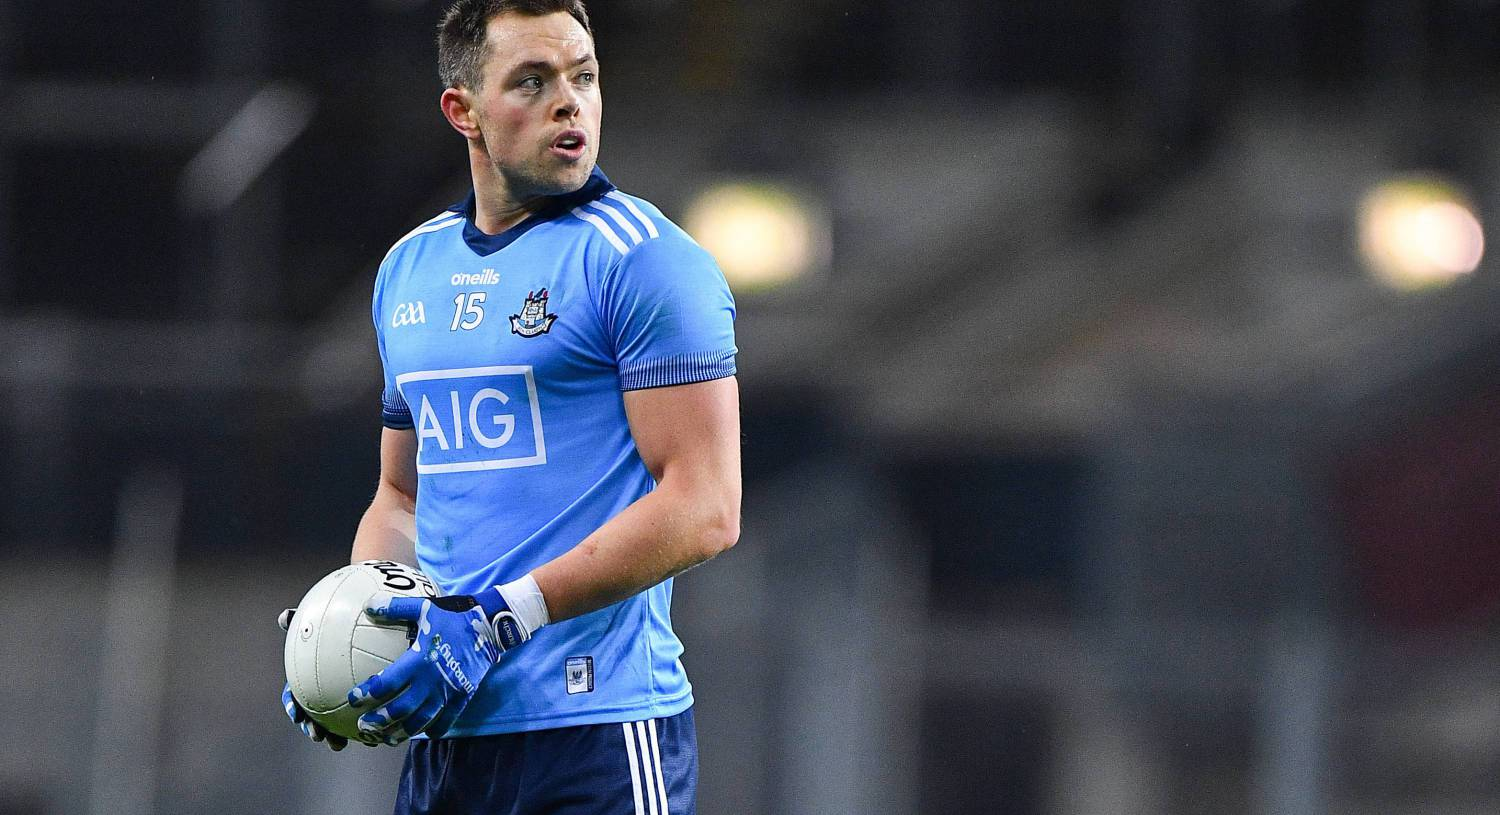 Kieran Shannon: From Christy Ring to Dean Rock, geniuses are not born great. It's work-rate that makes them special